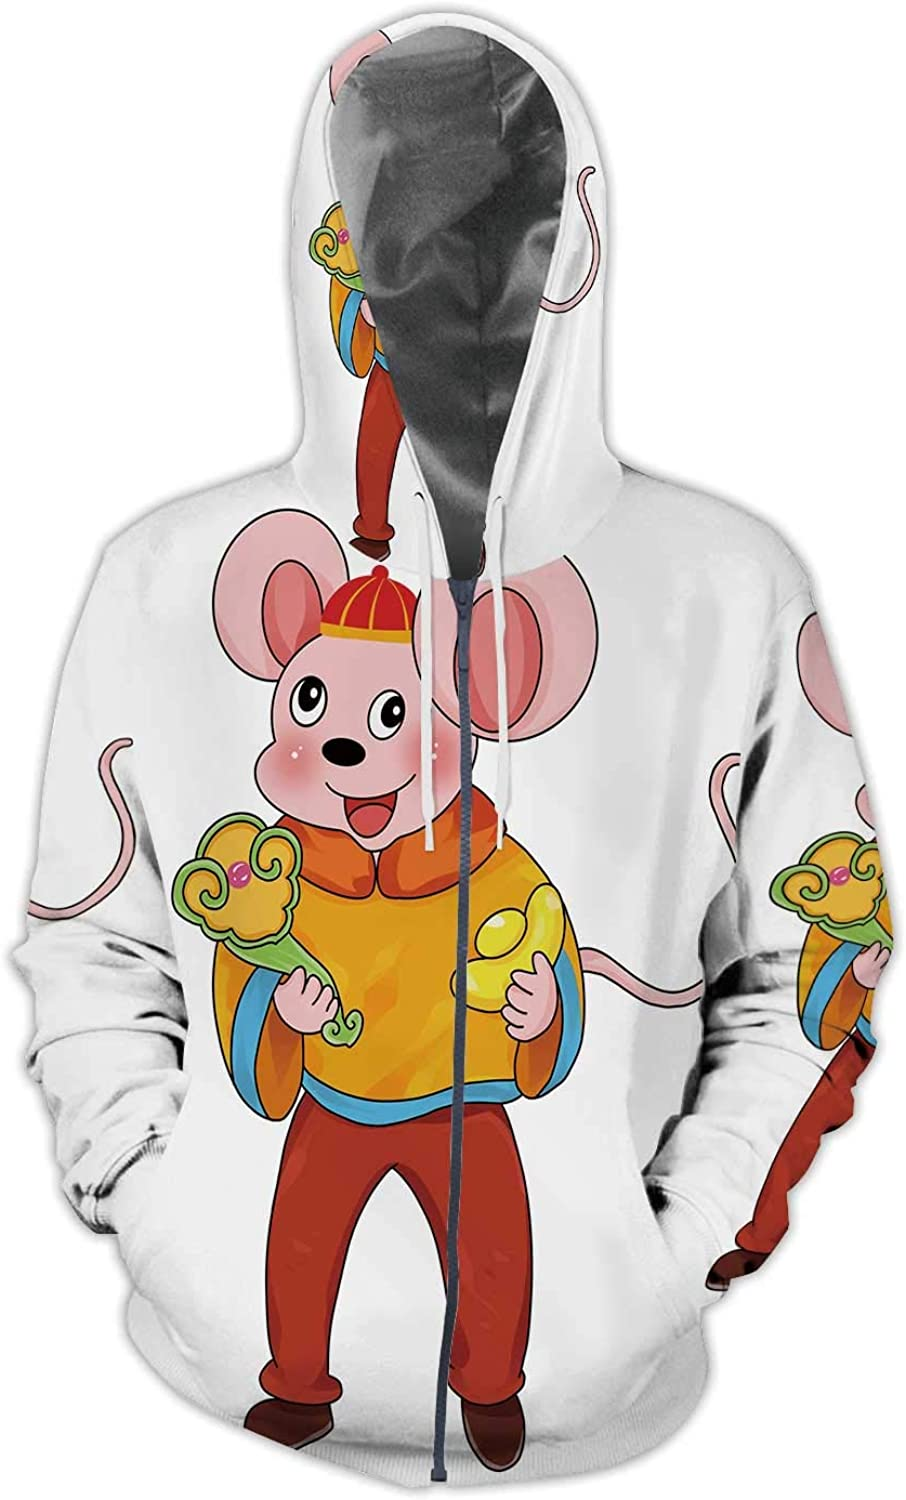 Muse Happy New Years,Men//Womens Warm Outerwear Jackets and Hoodies 2020 Year of The Rat S